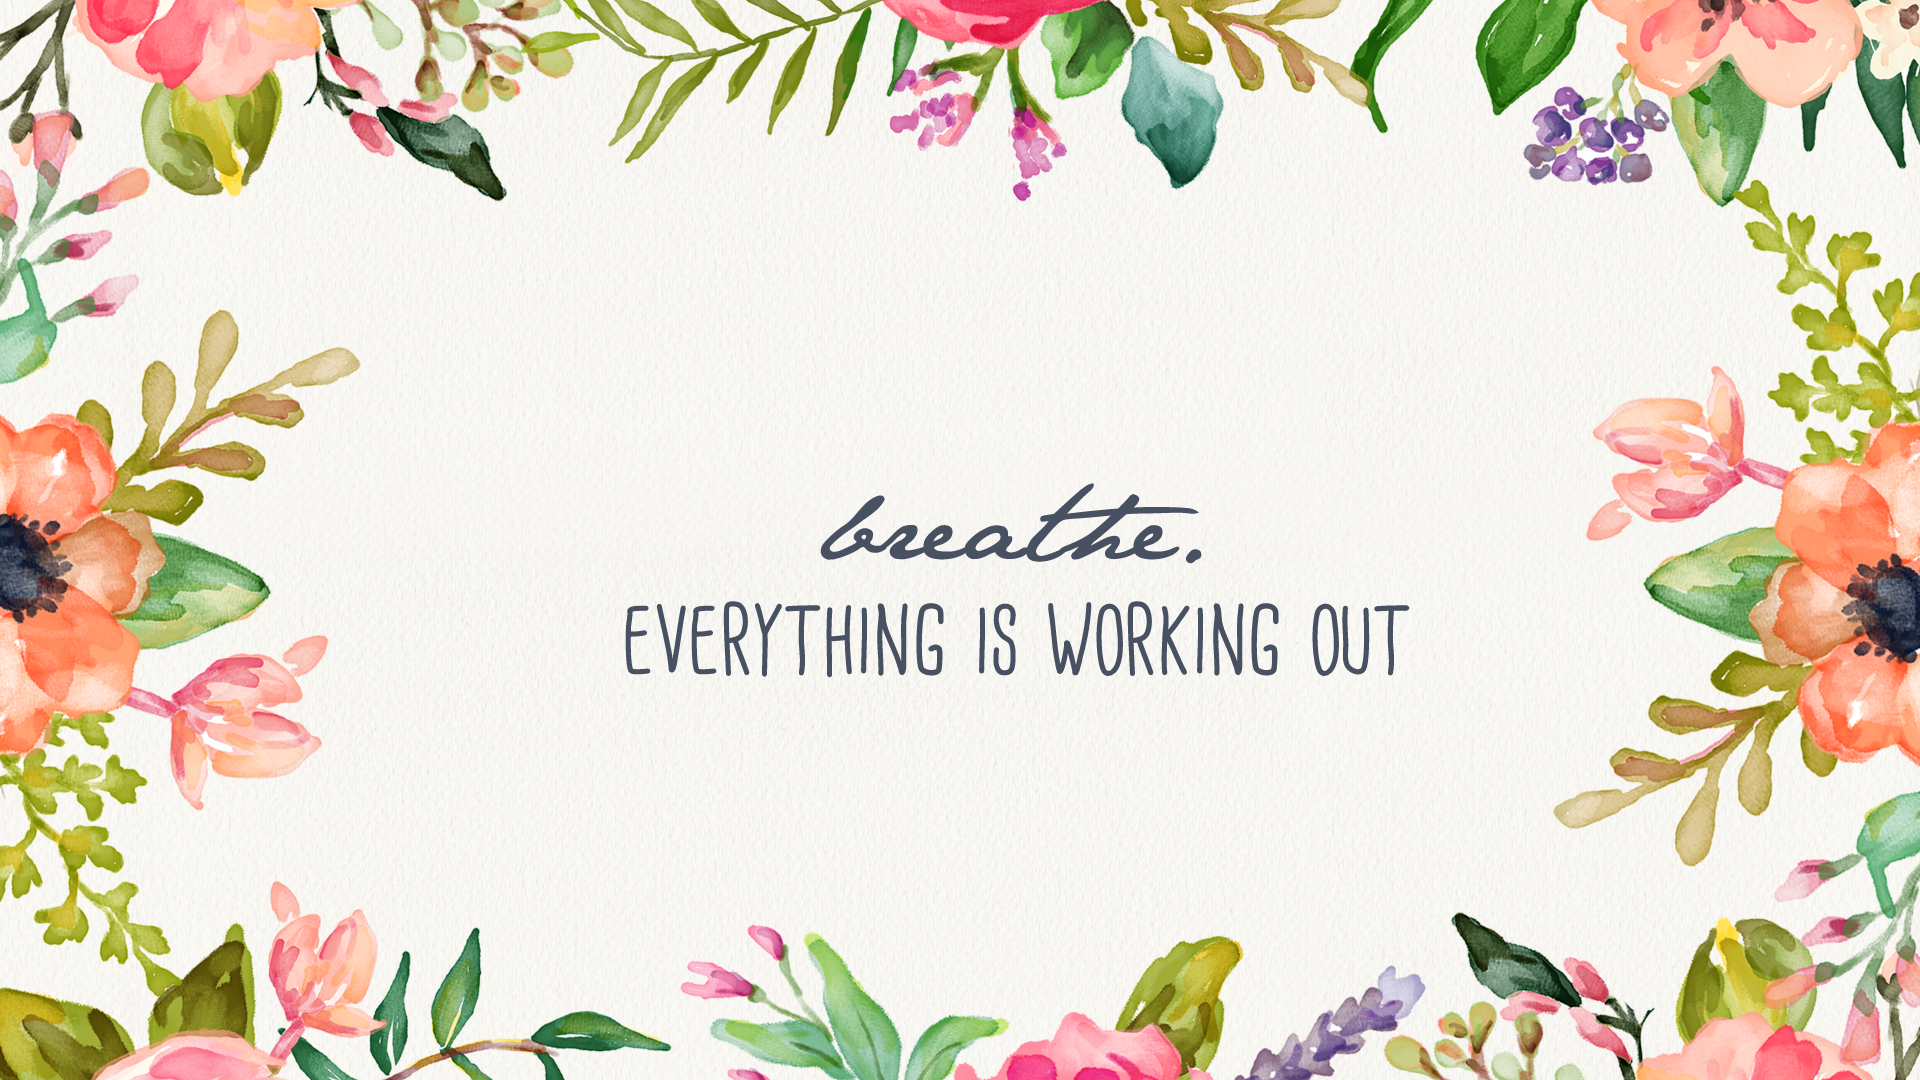 Breathe Floral Desktop Wallpaper Inspired By Beatrice Motivational Desktop Background Floral 3151658 Hd Wallpaper Backgrounds Download